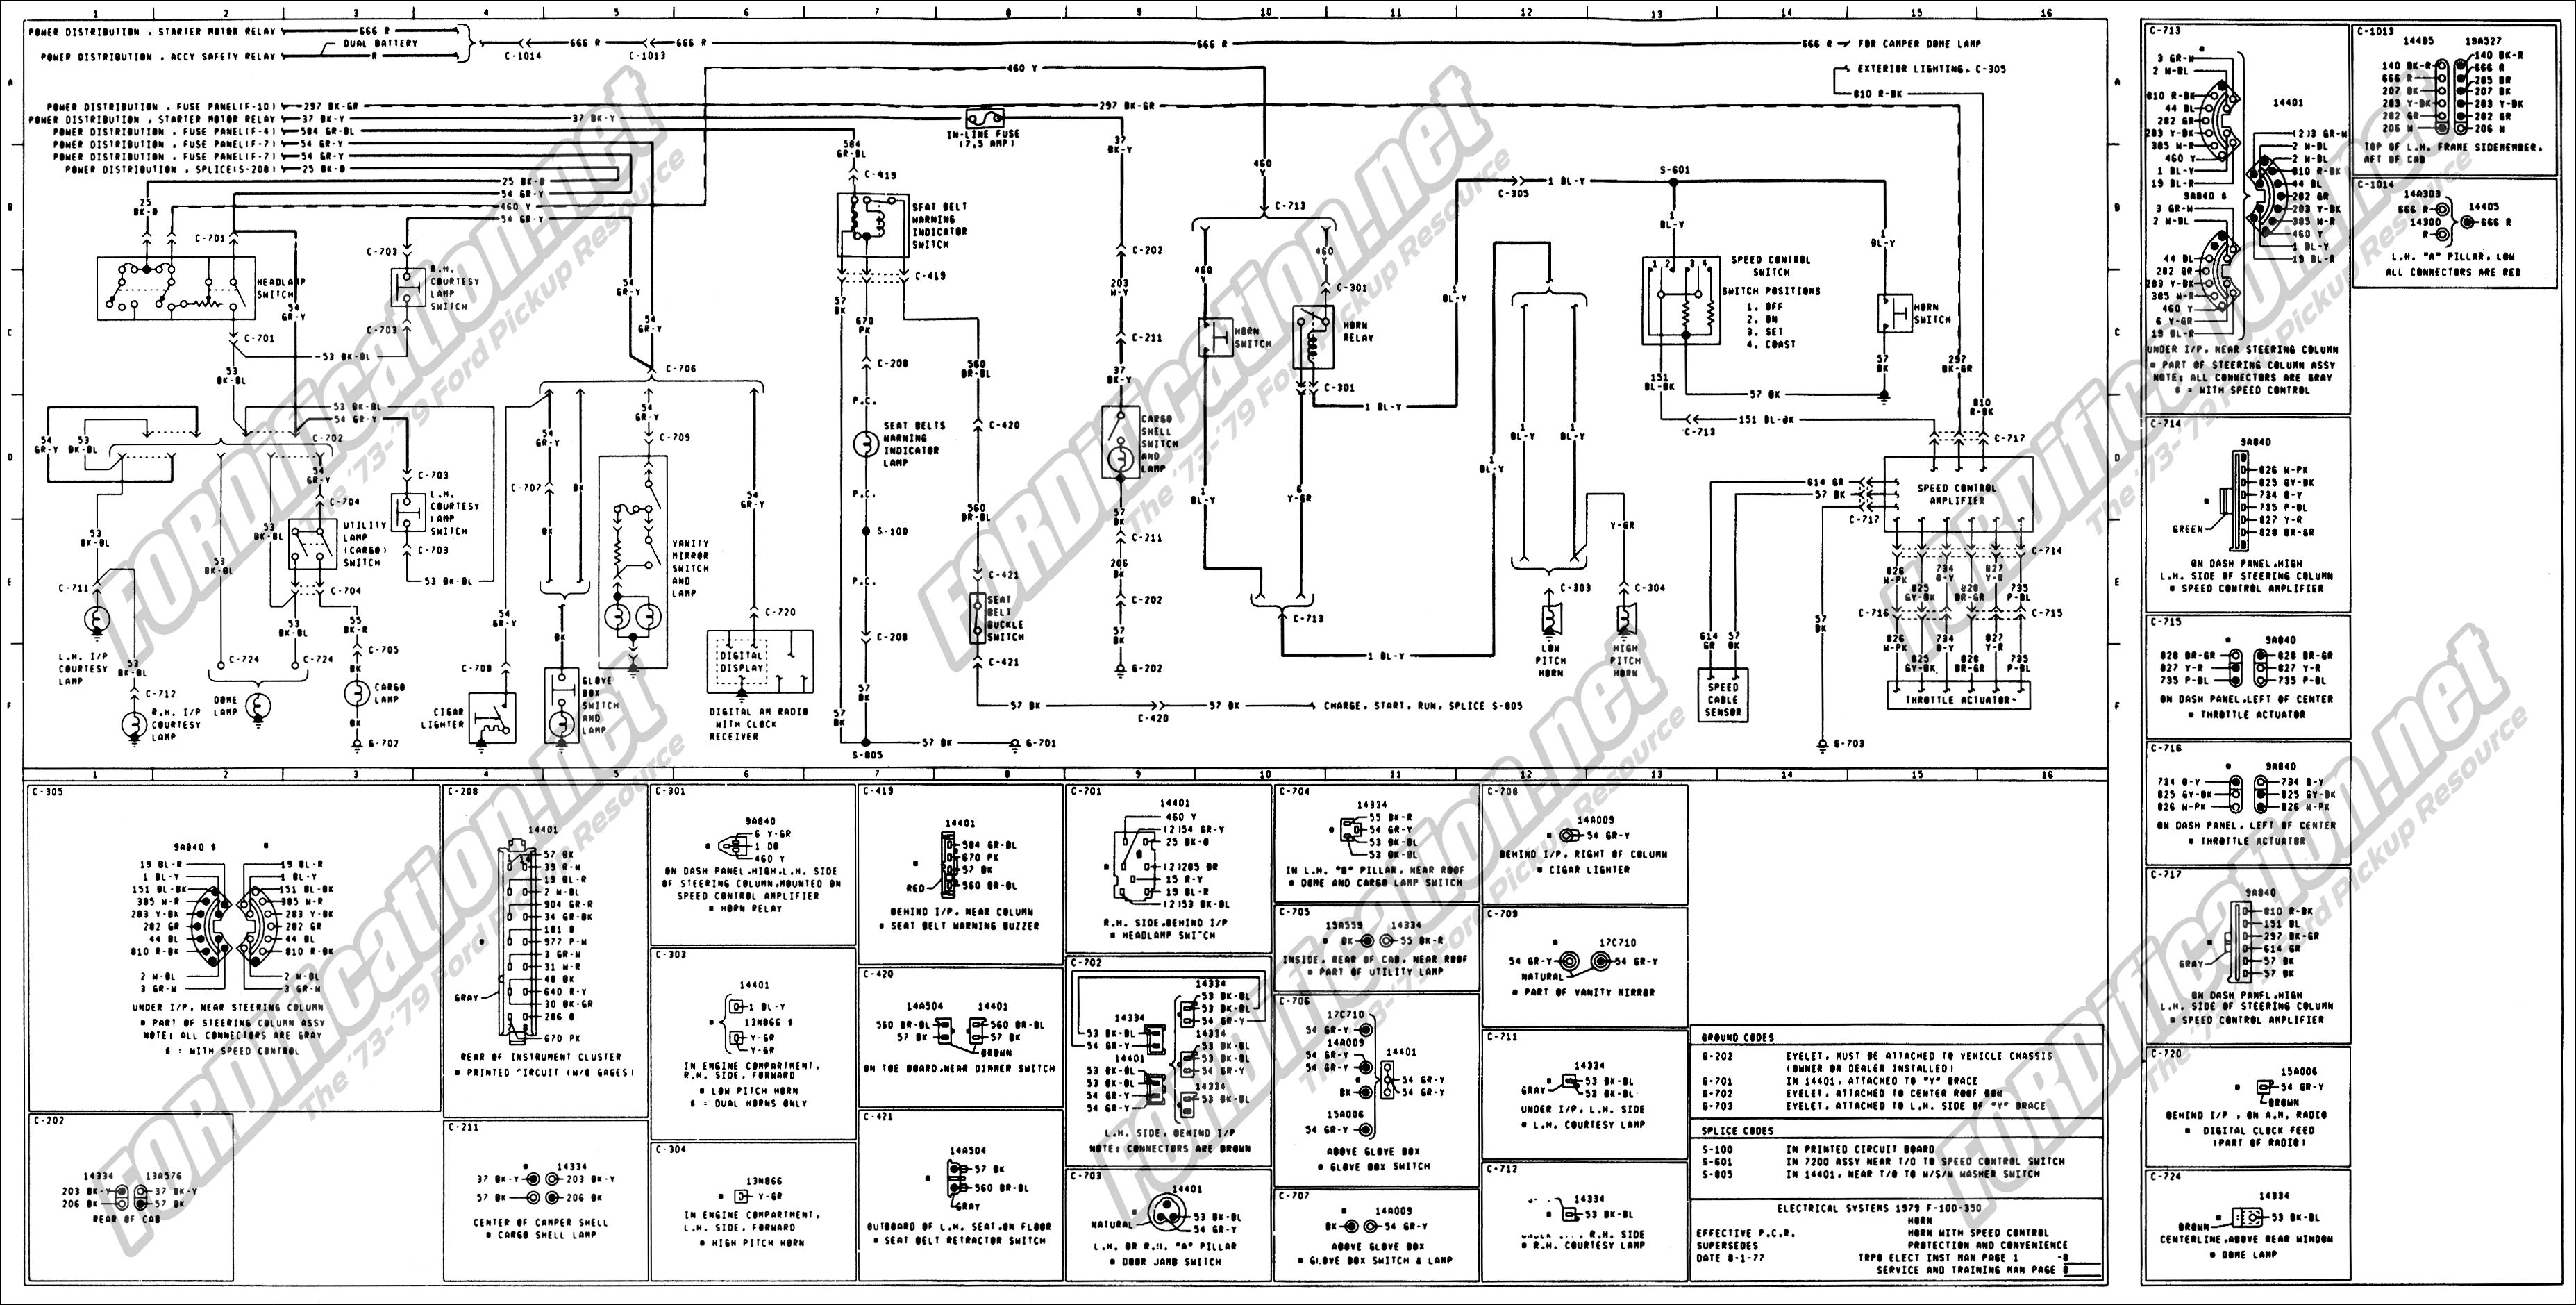 wiring_79master_8of9 1973 1979 ford truck wiring diagrams & schematics fordification net 1971 ford f250 wiring diagram at bakdesigns.co